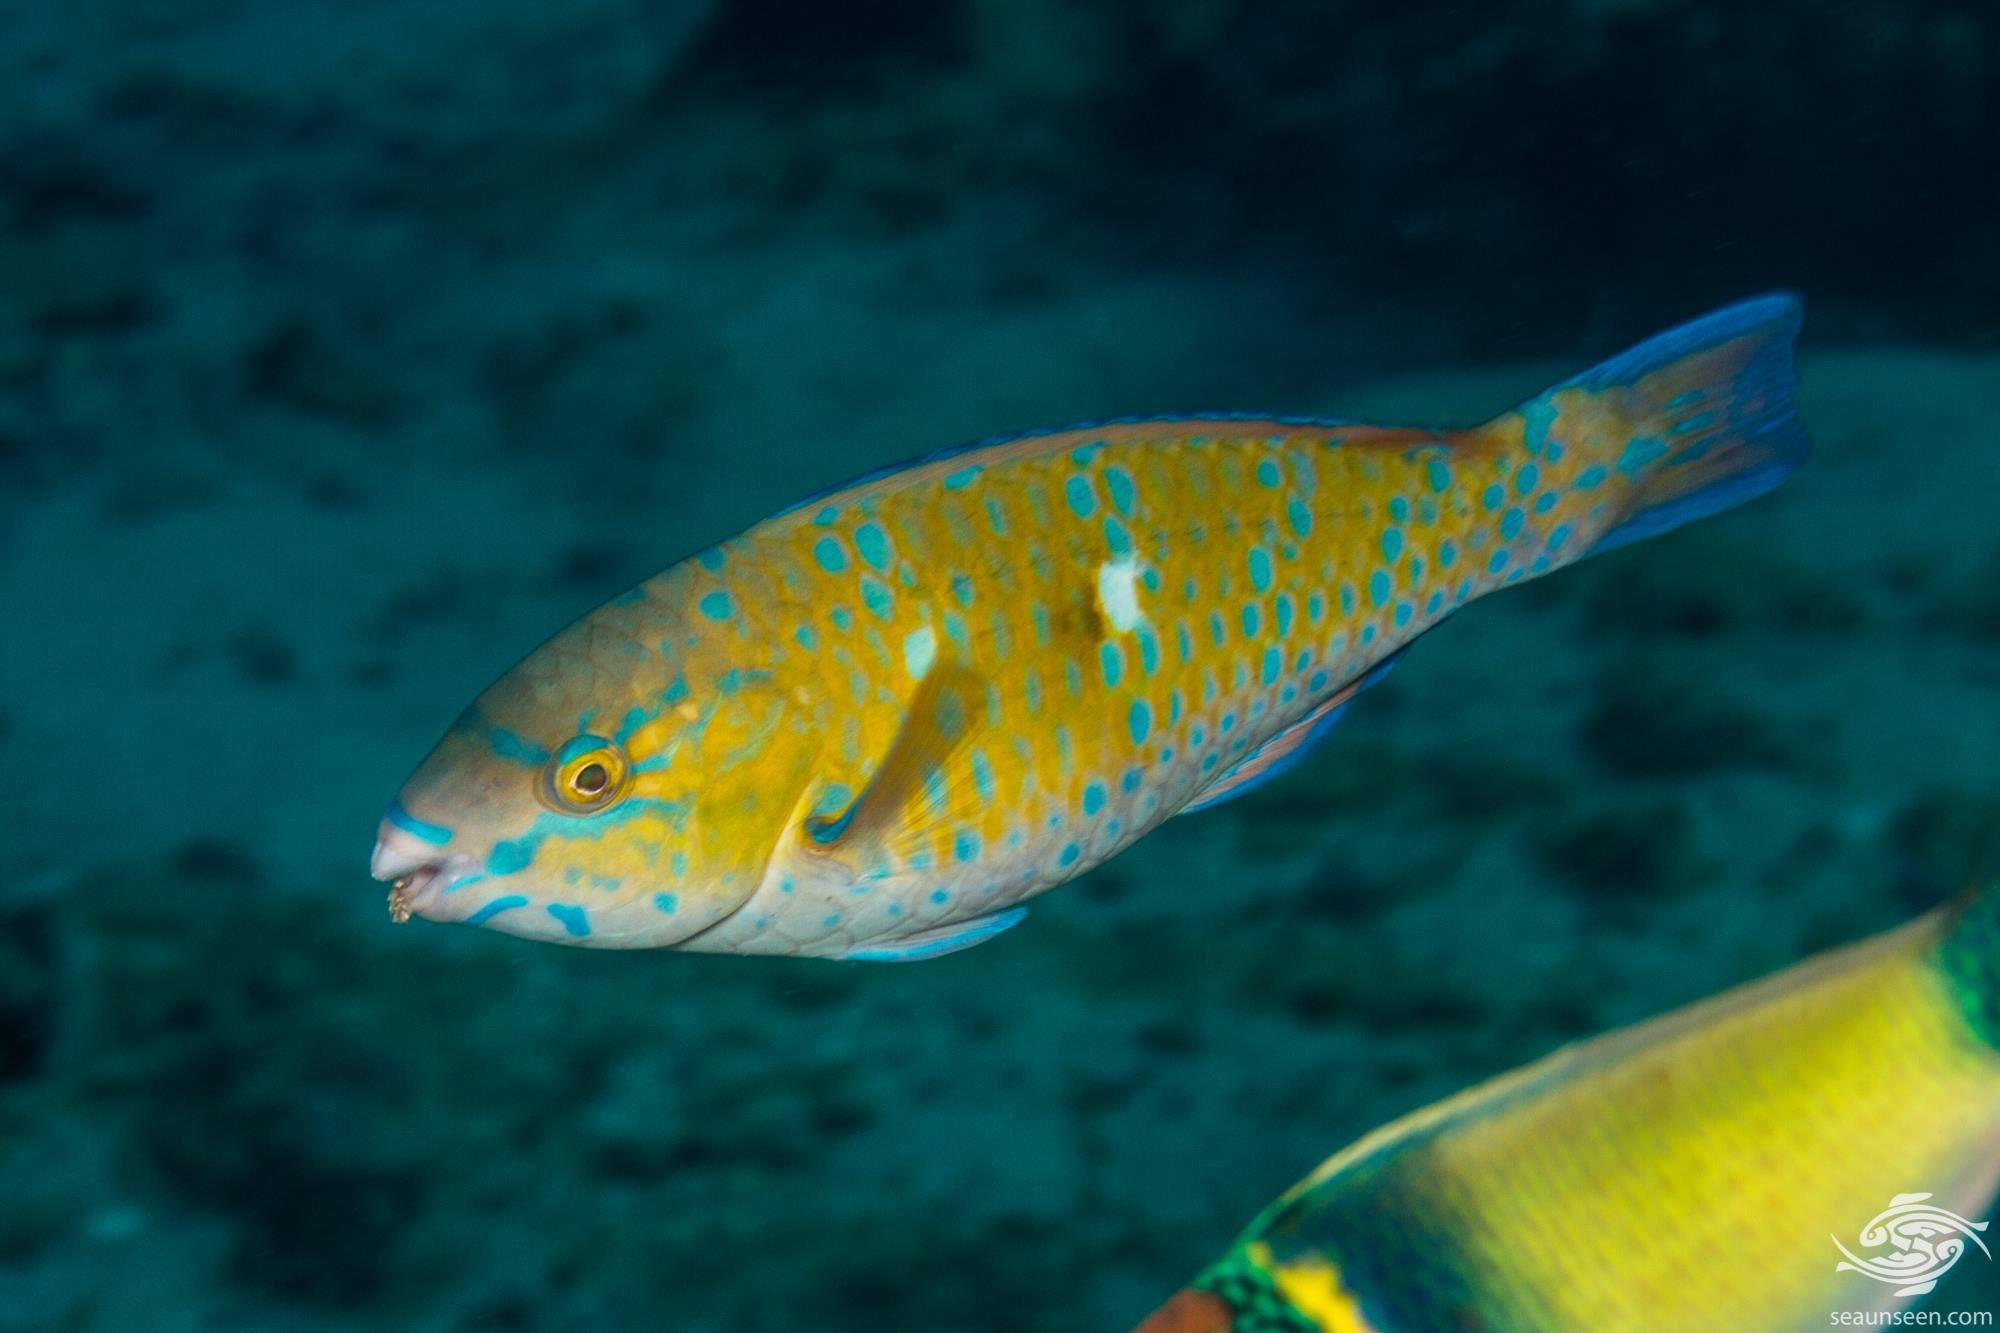 Juvenile Blue-barred Parrotfish (Scarus ghobban) is also known as the Blue trim Parrotfish, Globe-headed Parrotfish, Green blotched Parrotfish and Bluechin parrotfish